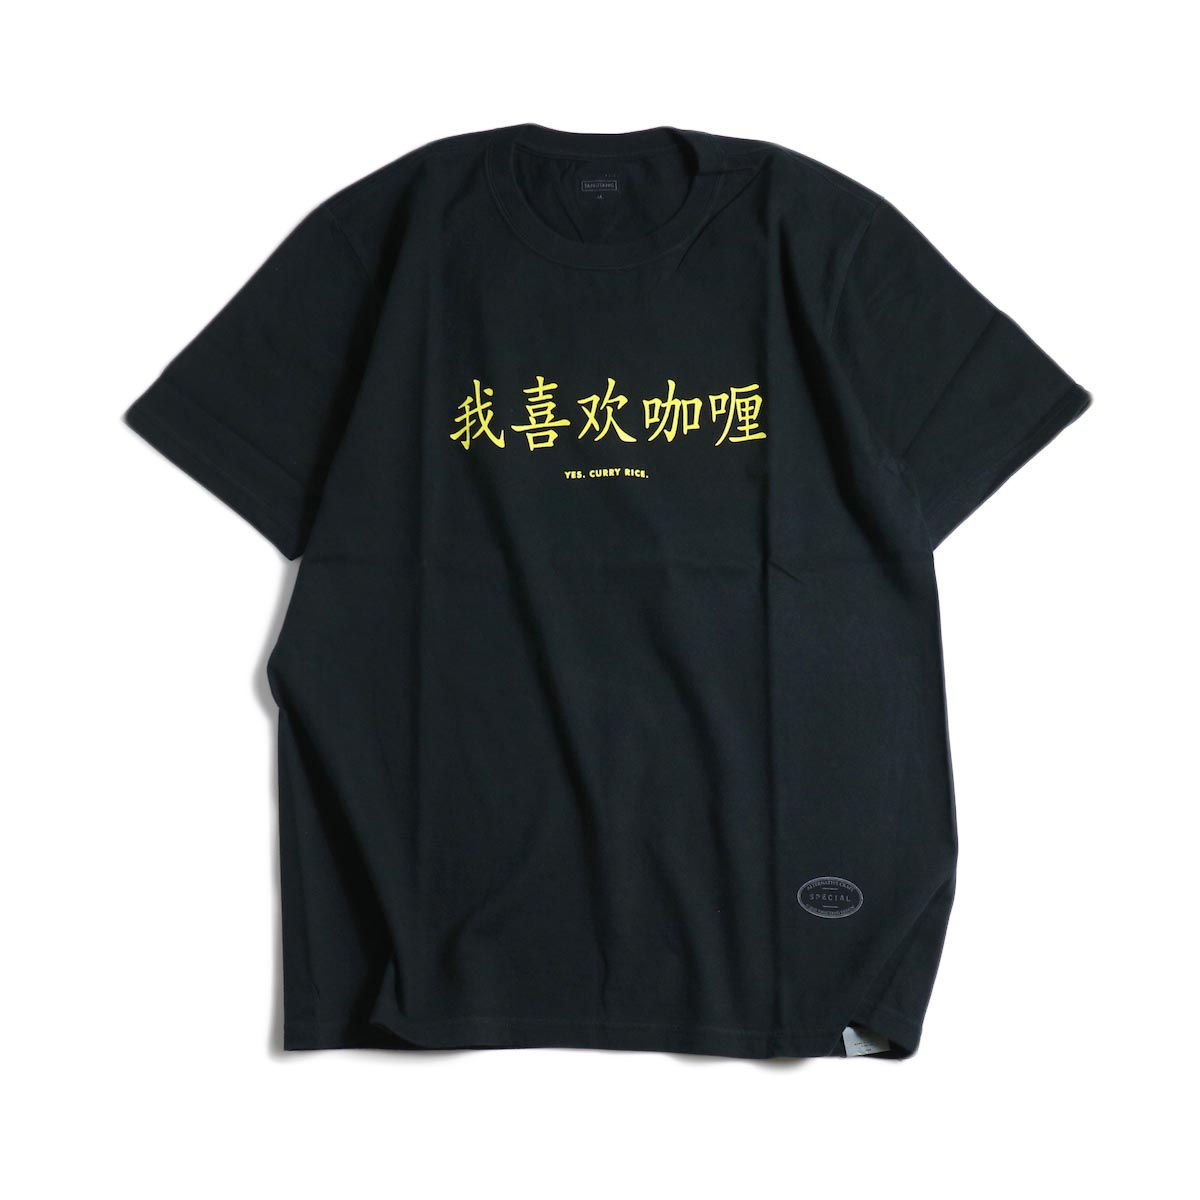 TANGTANG / CURRY -CHINESE (Black)